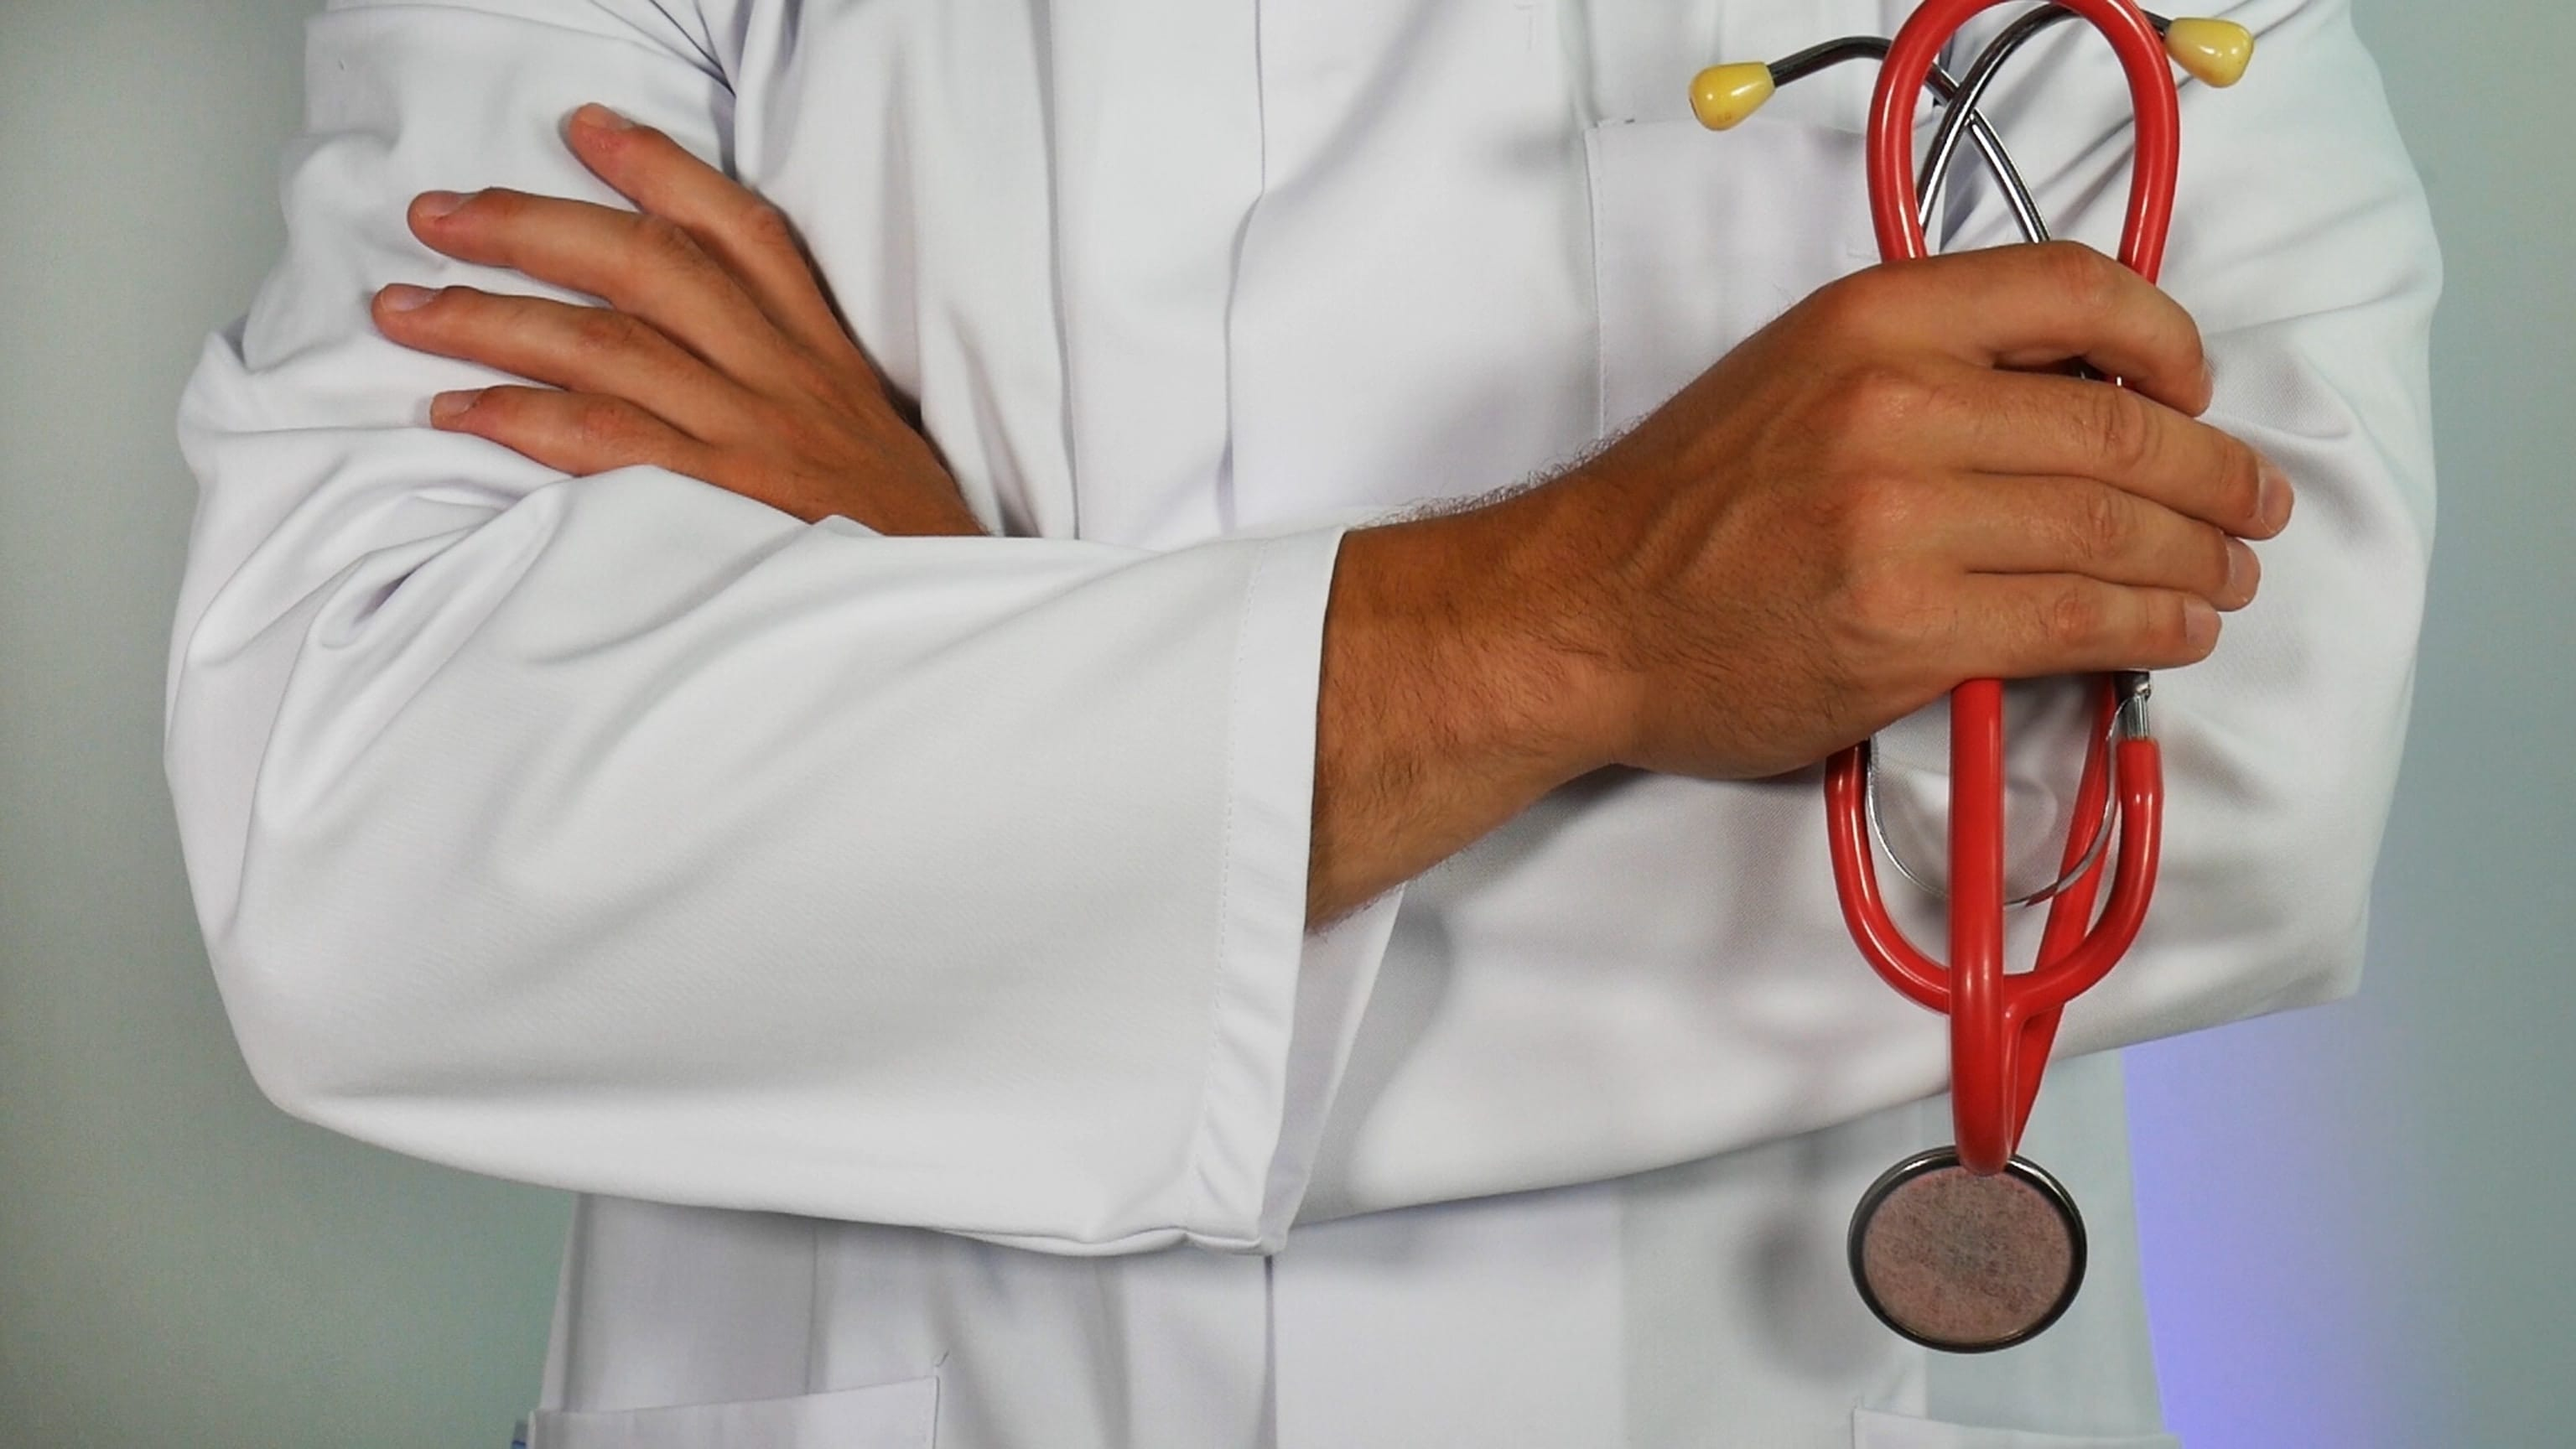 Doctor holding red stethoscope; image by Online Marketing, via Unsplash.com.